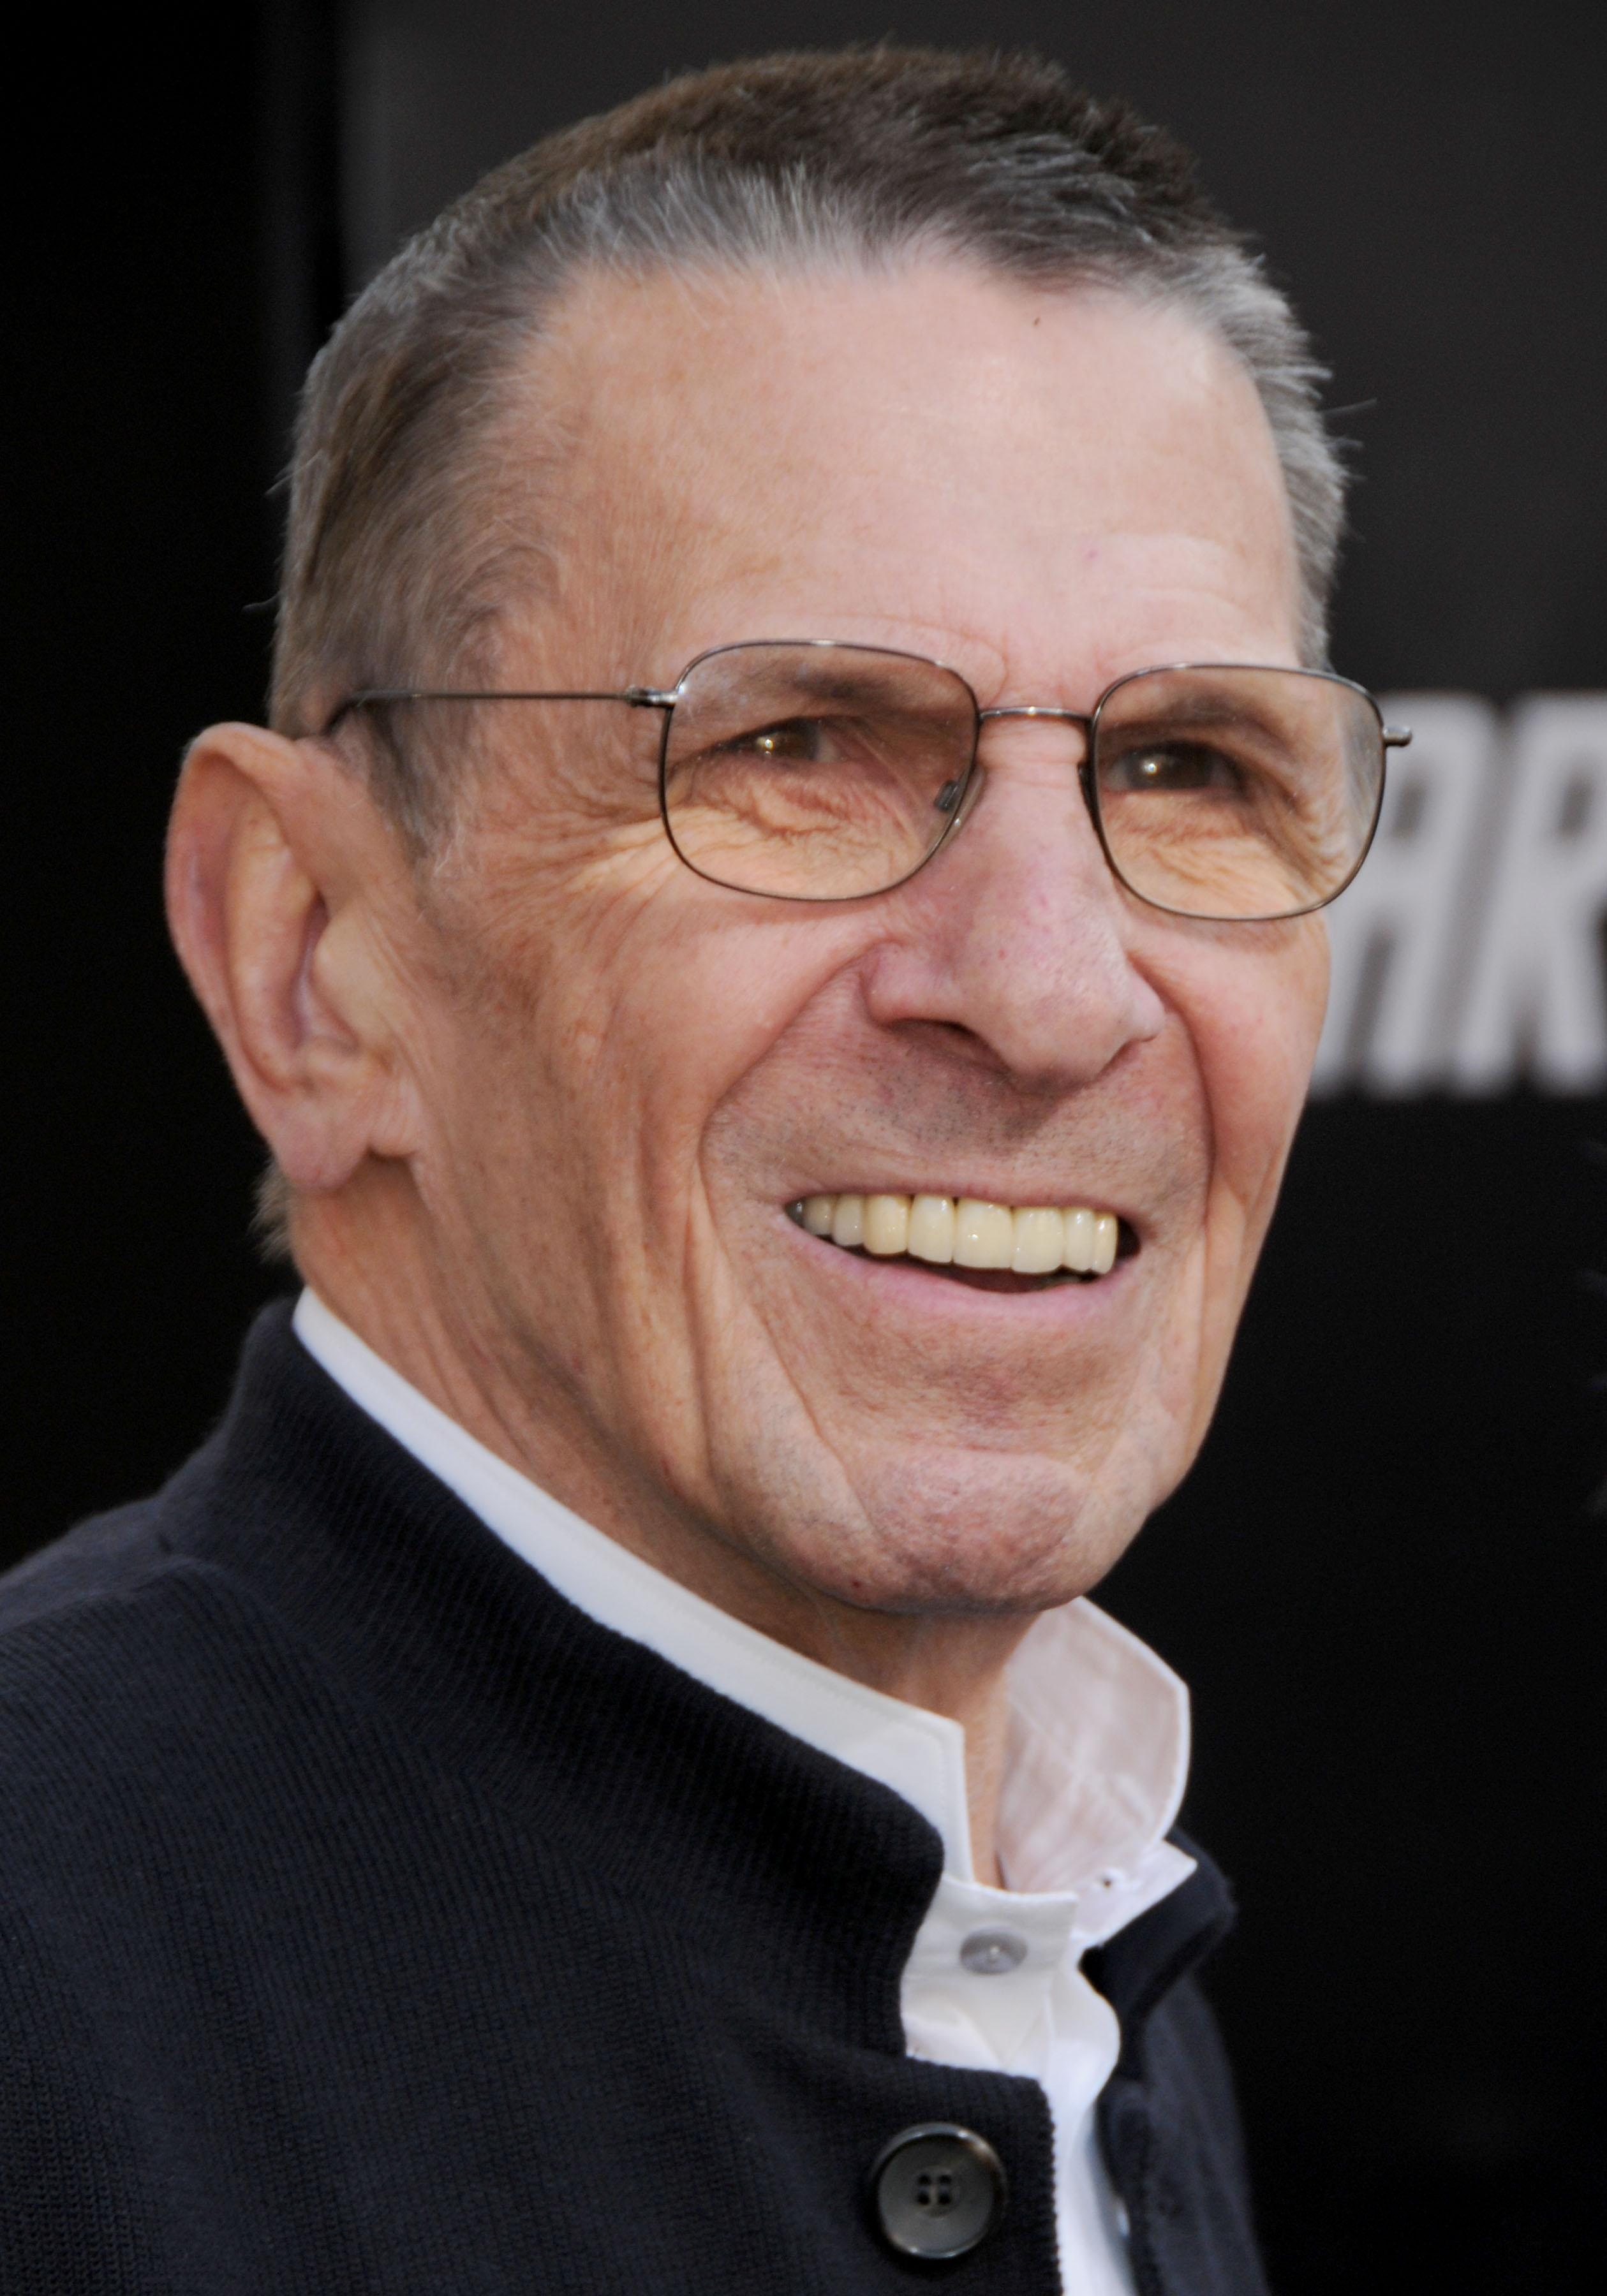 leonard nimoy zachary quintoleonard nimoy wiki, leonard nimoy you are not alone lyrics, leonard nimoy poems, leonard nimoy zachary quinto, leonard nimoy death news, leonard nimoy station, leonard nimoy wife, leonard nimoy songs, leonard nimoy twilight zone, leonard nimoy playing guitar, leonard nimoy mission impossible, leonard nimoy hobbit, leonard nimoy official site, leonard nimoy in search of, leonard nimoy last photo, leonard nimoy imdb, leonard nimoy rip, leonard nimoy ethnic, leonard nimoy genealogy, leonard nimoy audi commercial